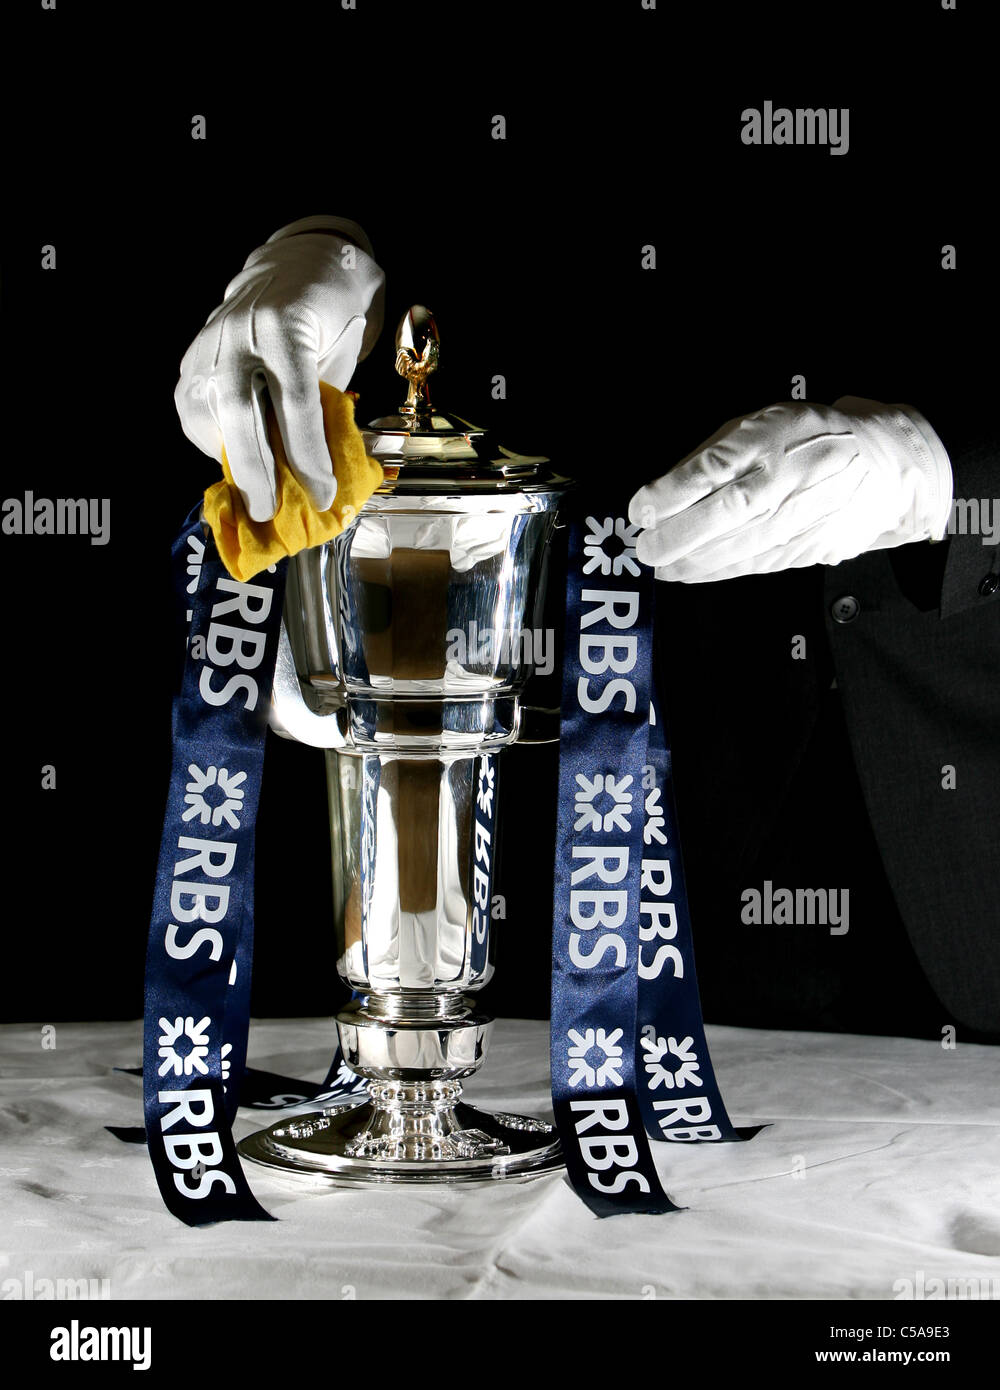 The RBS Six Nations Trophy is polished ahead of the Rugby Union competition. - Stock Image